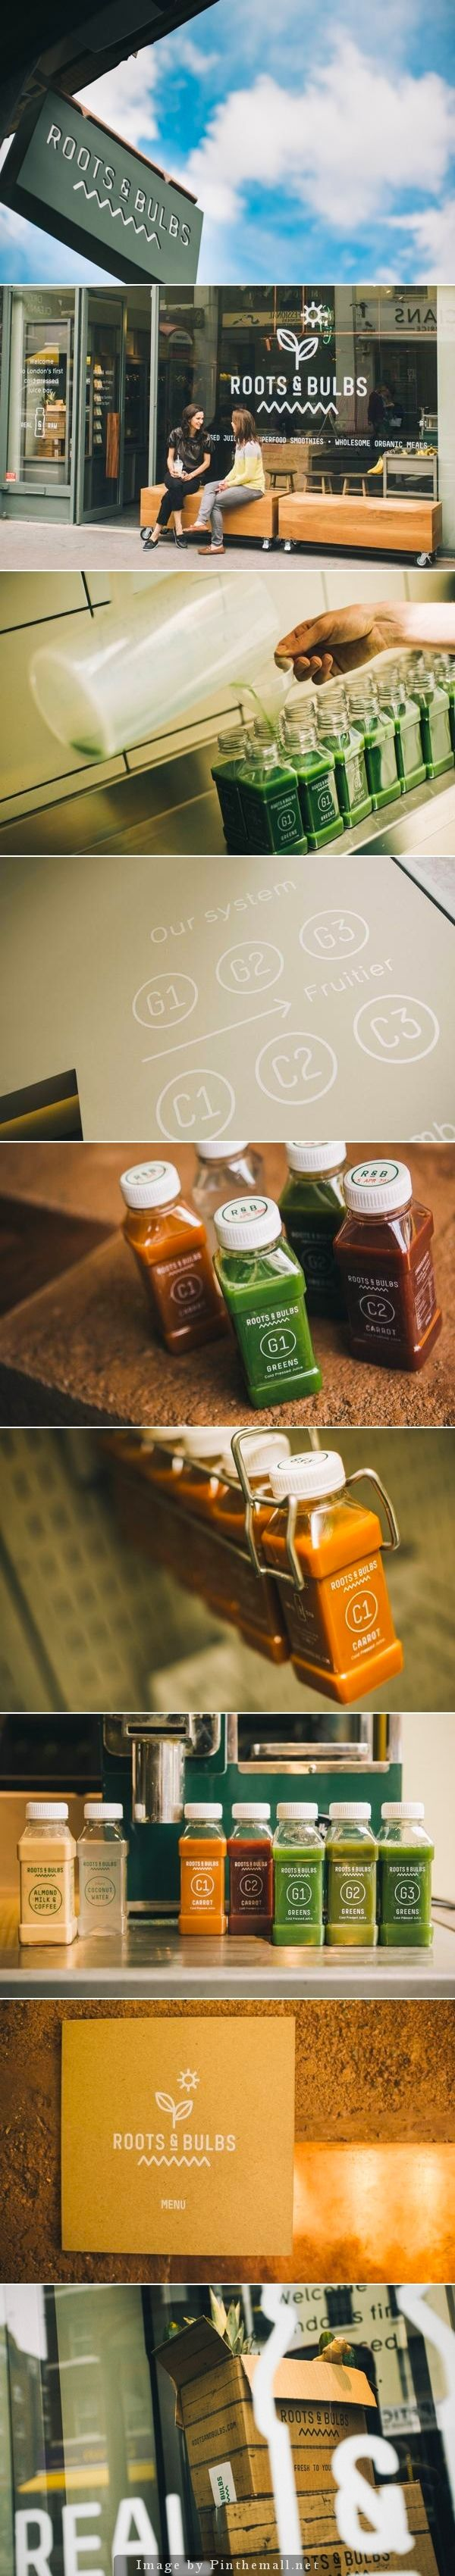 branding / Identity | Root Bulbs #branding #packaging #juice